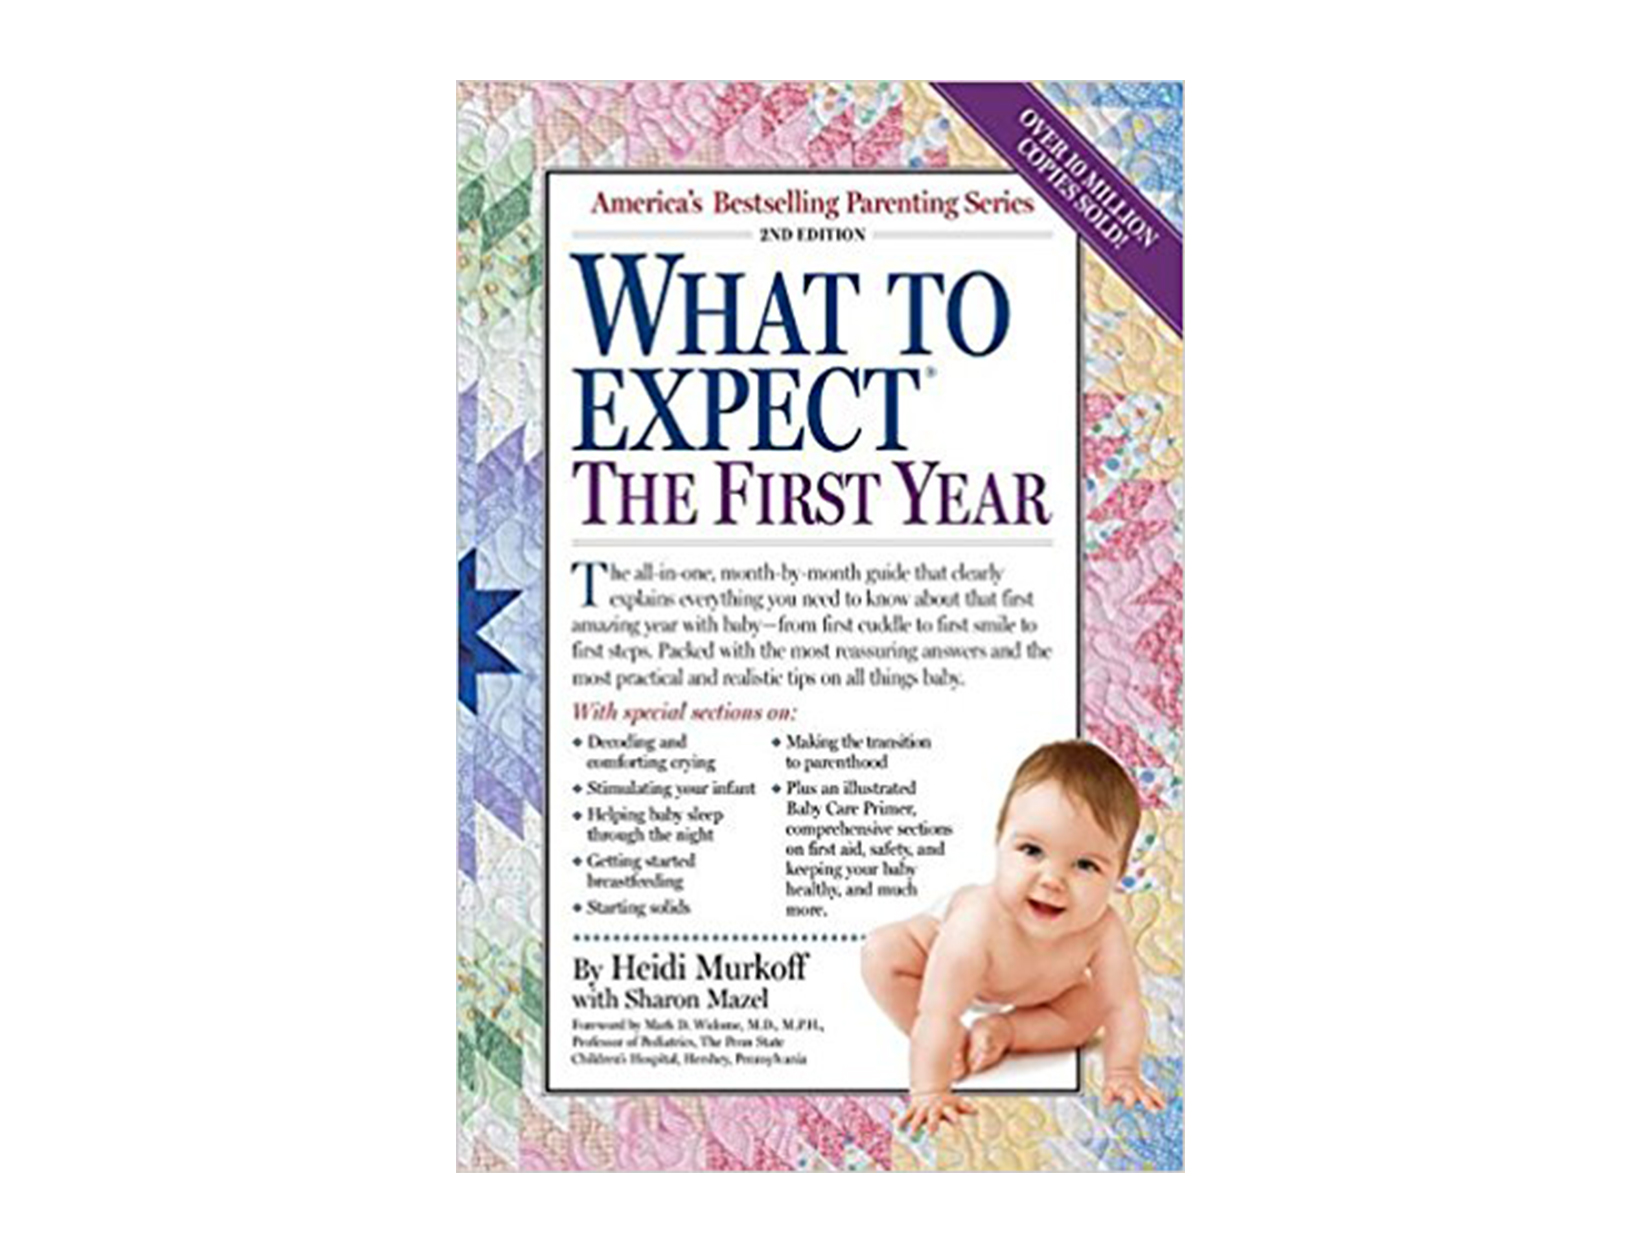 <em>What to Expect the First Year</em> by Heidi Murkoff